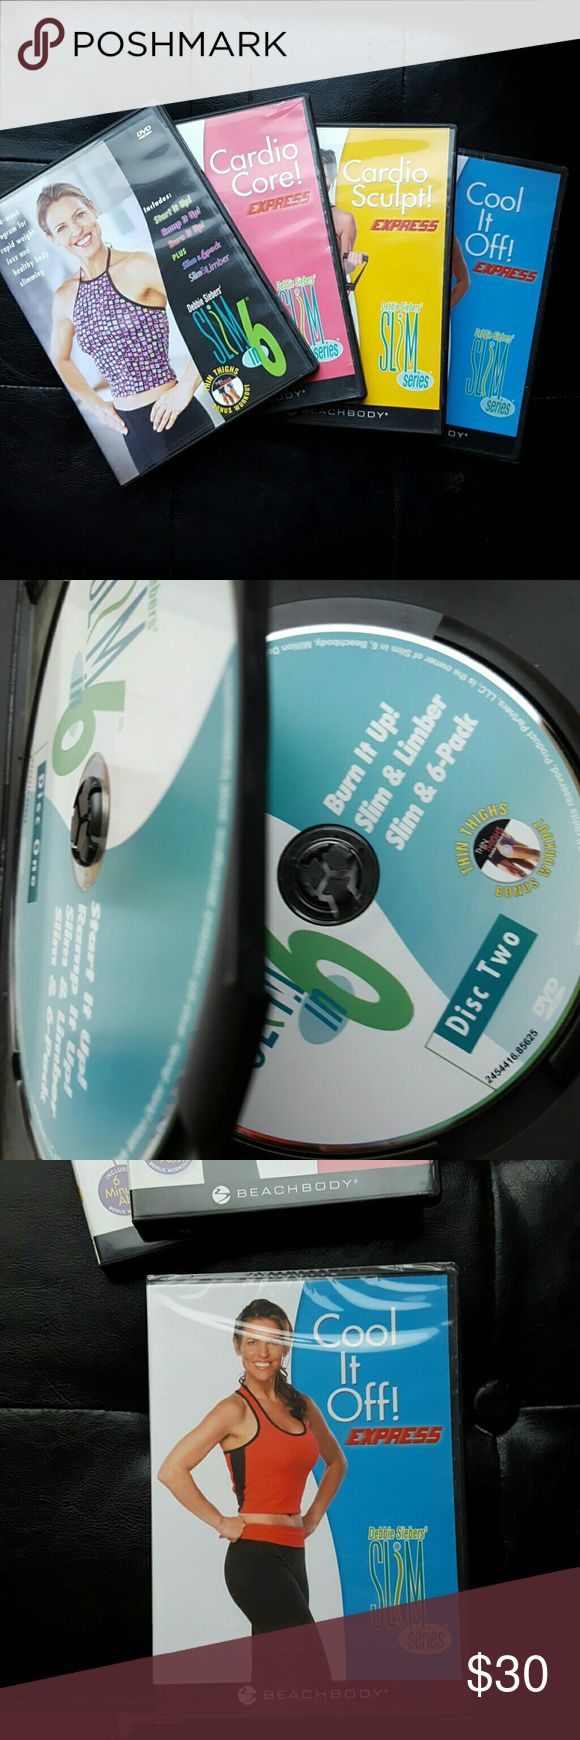 """SLIM IN 6 WORKOUT DVD DEBBIE SIEBERS Beach body Slim in 6 workout Dvd's. 5 Disc set. Nothing wrong with the DVD's. """"Cool it off"""" is still wrapped in plastic. Great workout to start your New years resolution! REASONABLE offers considered. Other"""